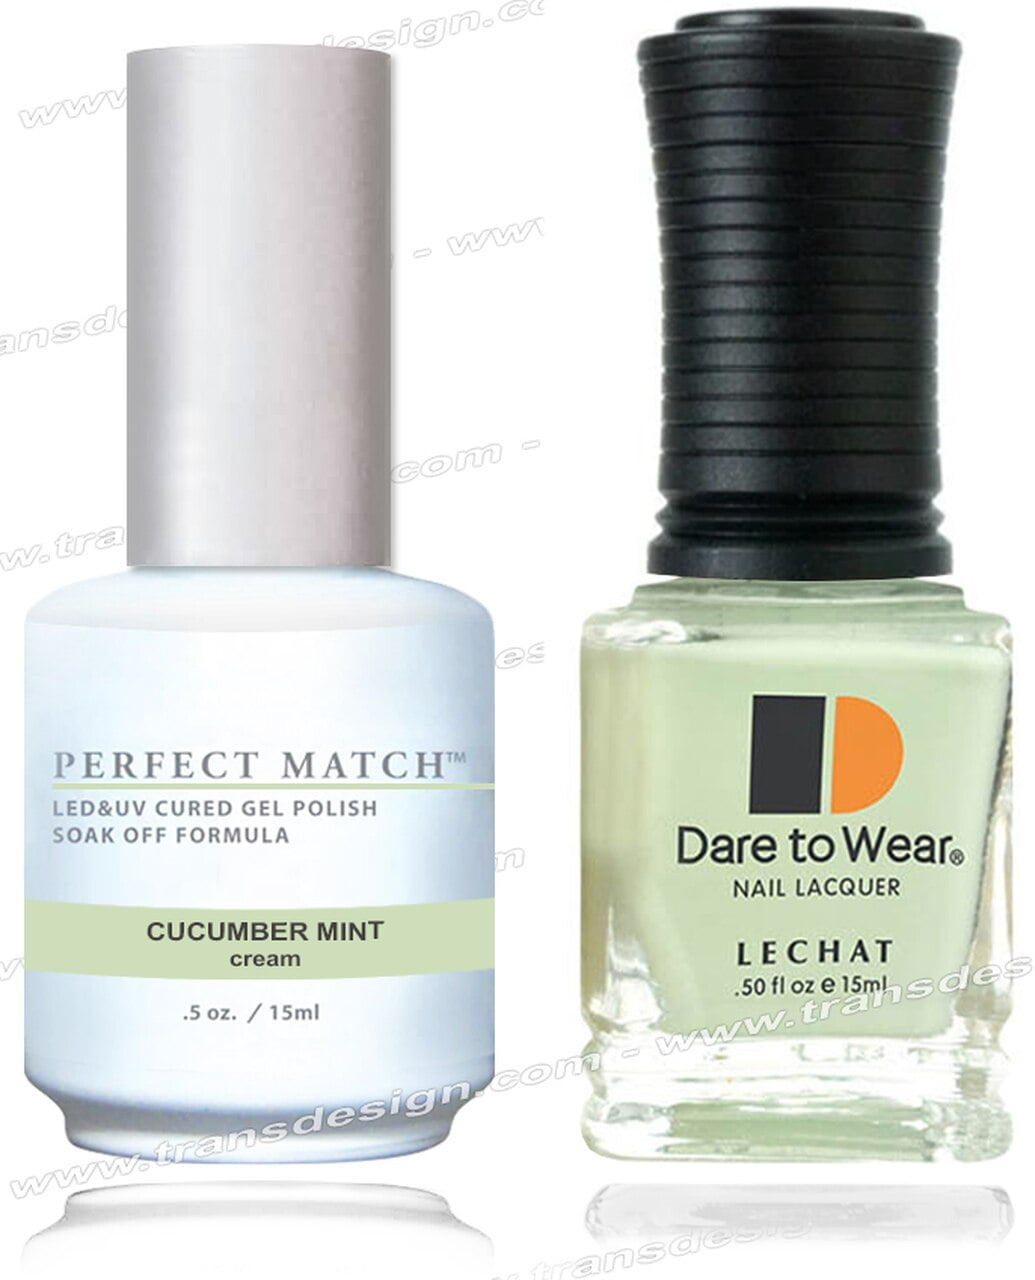 Perfect Match Cucumber Mint PMS227